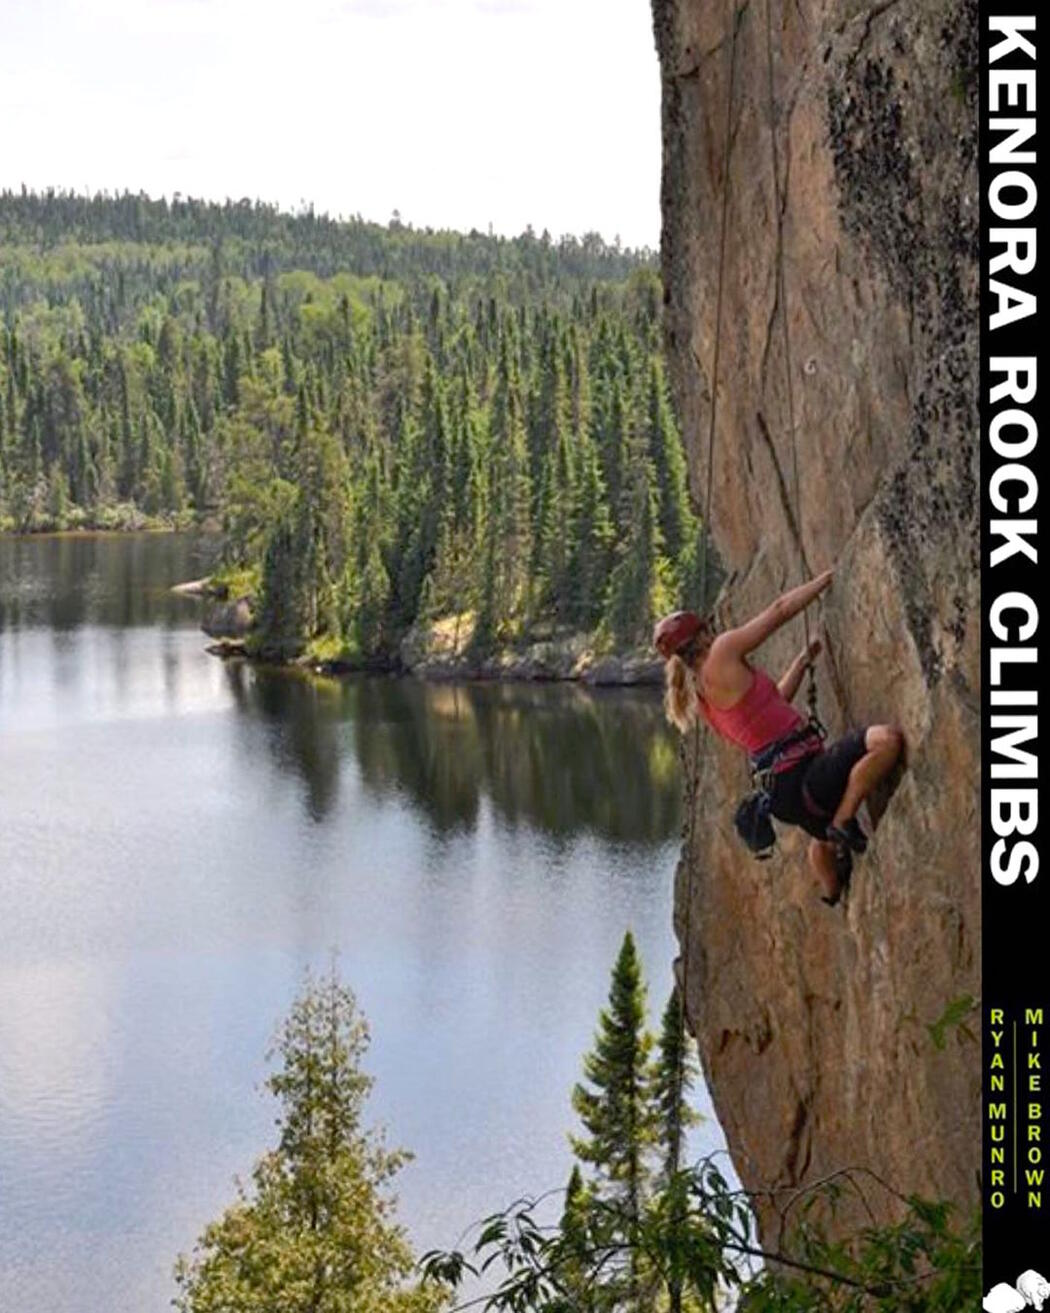 Woman climbing a vertical rock face with lake in background.